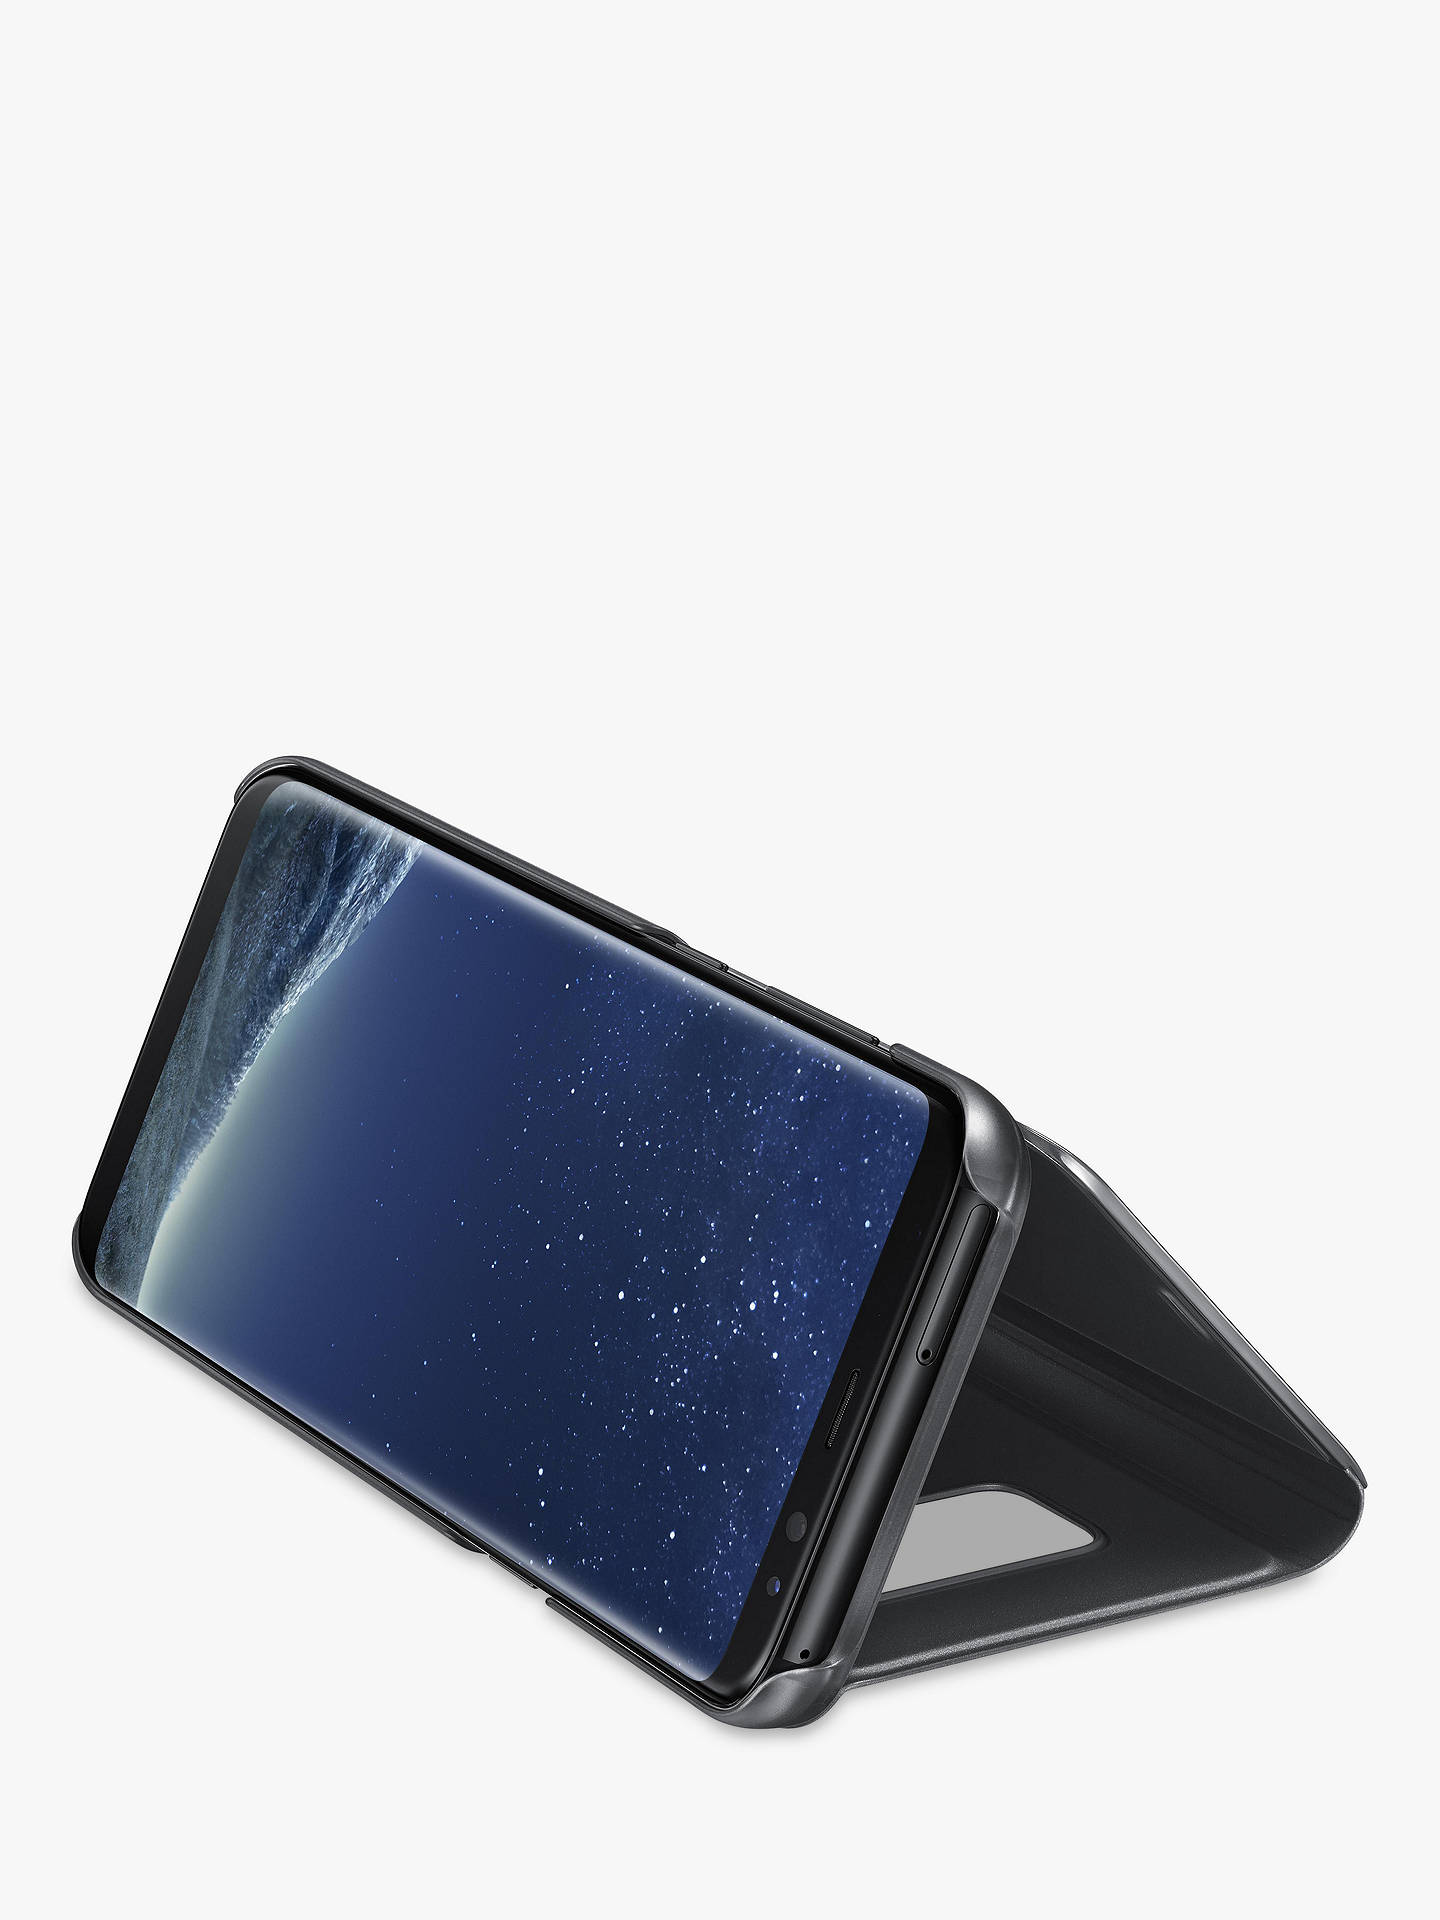 Buy Samsung Galaxy S8 Plus Clear View Stand Cover, Black Online at johnlewis.com